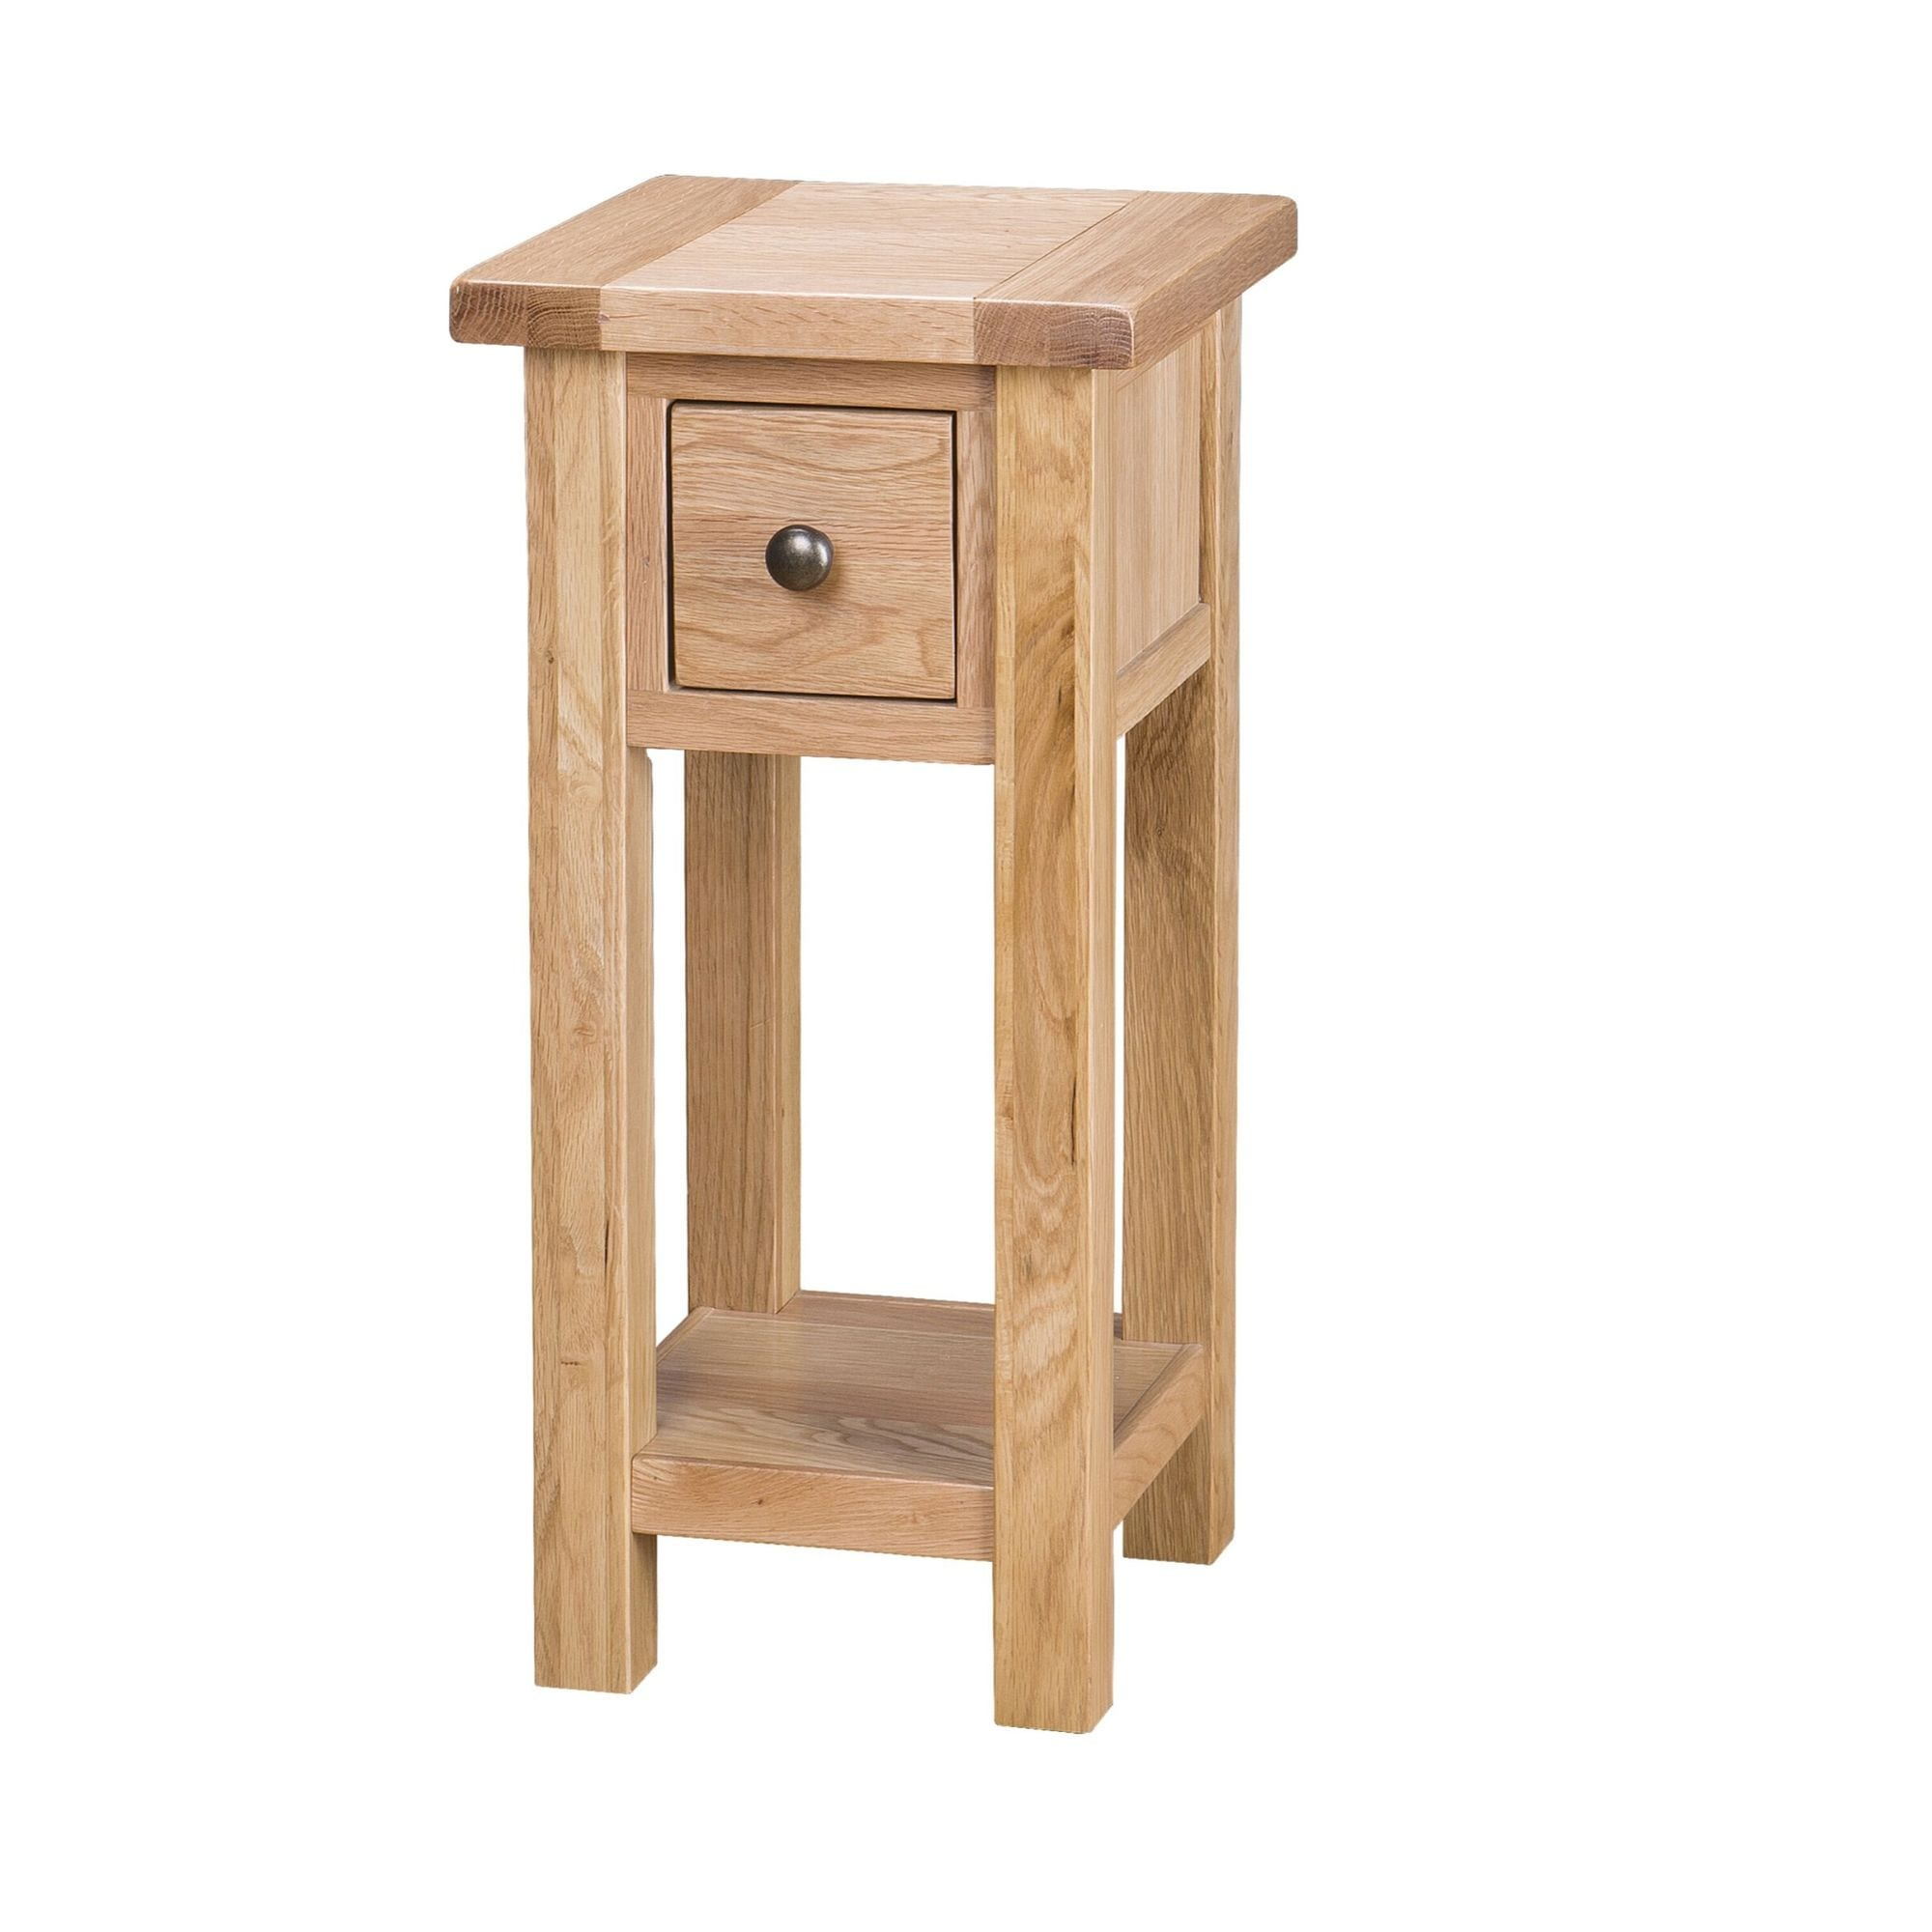 SAL022 Tall lamp table with drawers Besp-oak 1